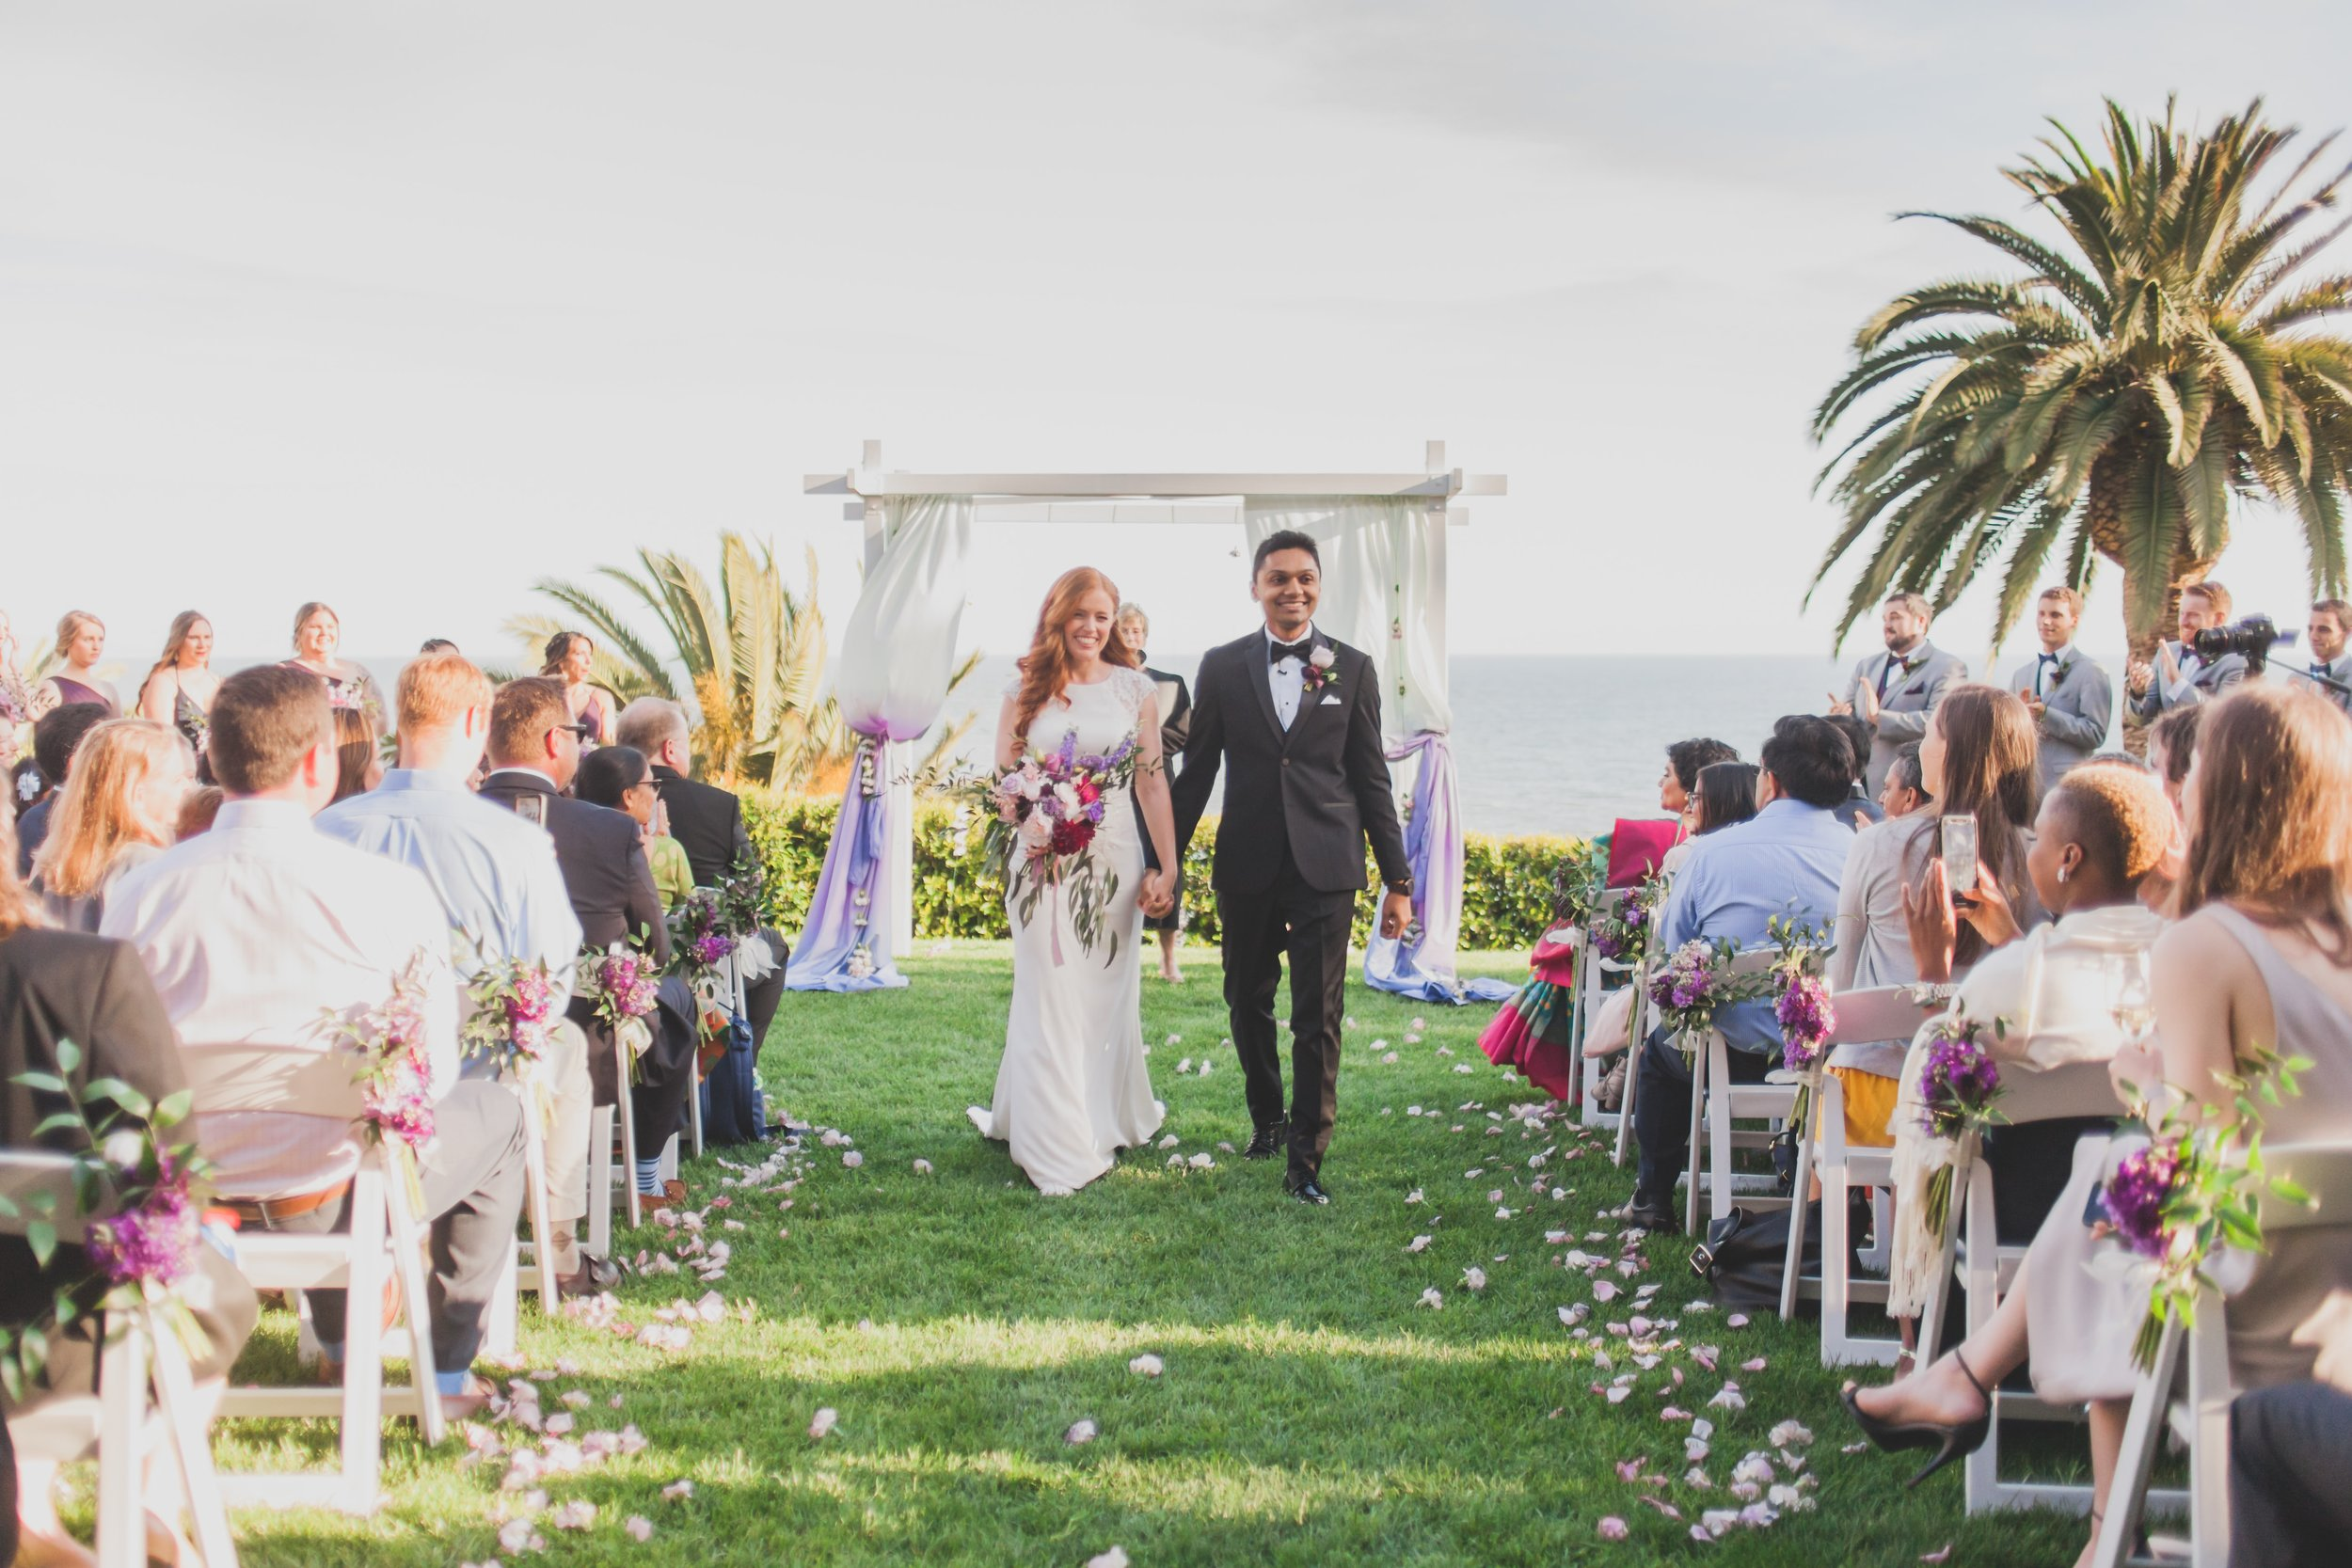 Wedding Photography - Pacific Palisades, CA - Bel Air Bay Club - The bride and groom making their exit down the aisle after their ceremony.